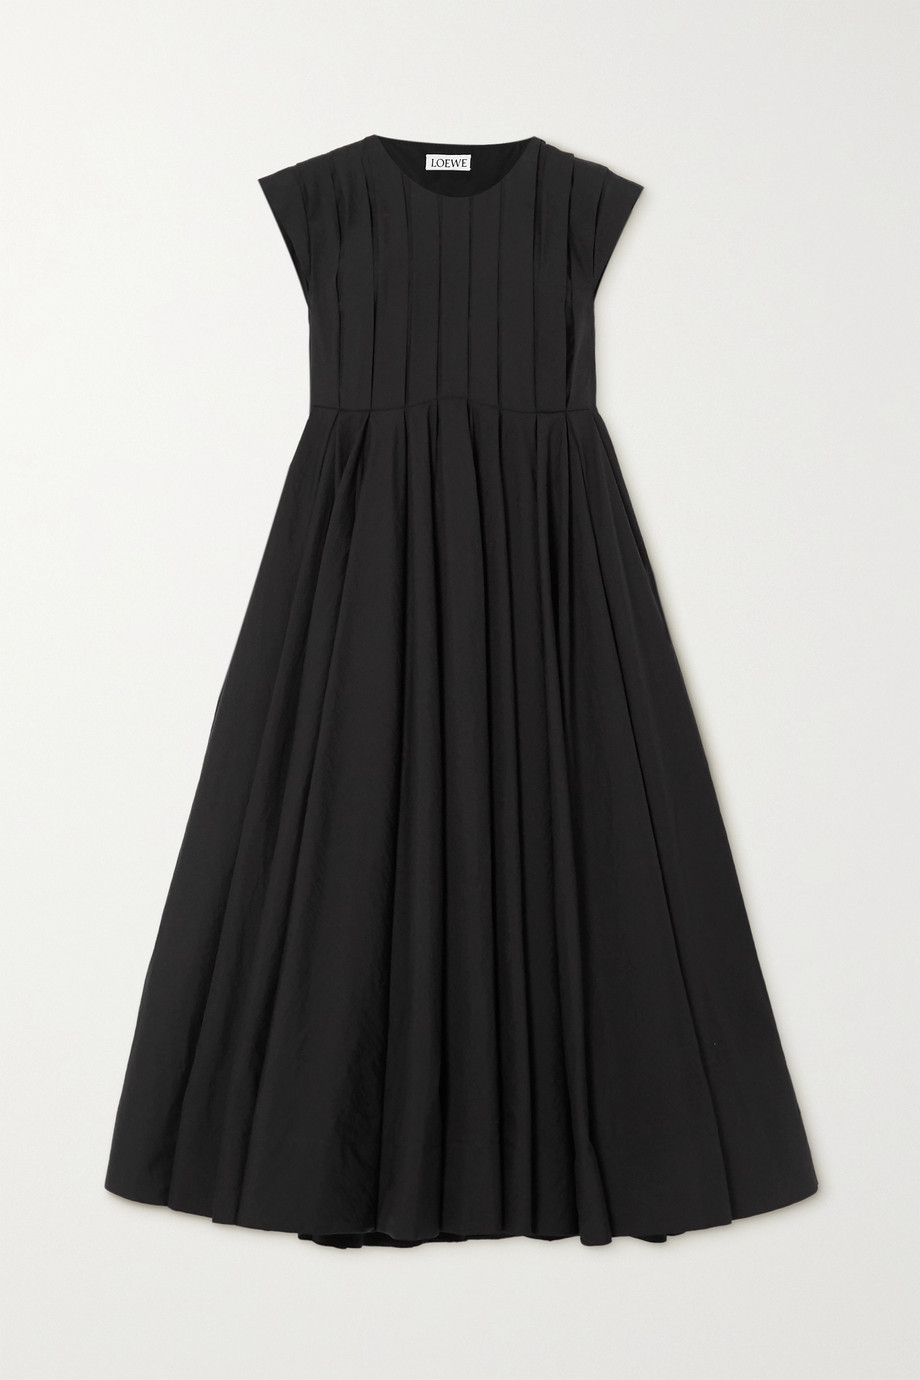 Loewe Pleated cotton-blend dress